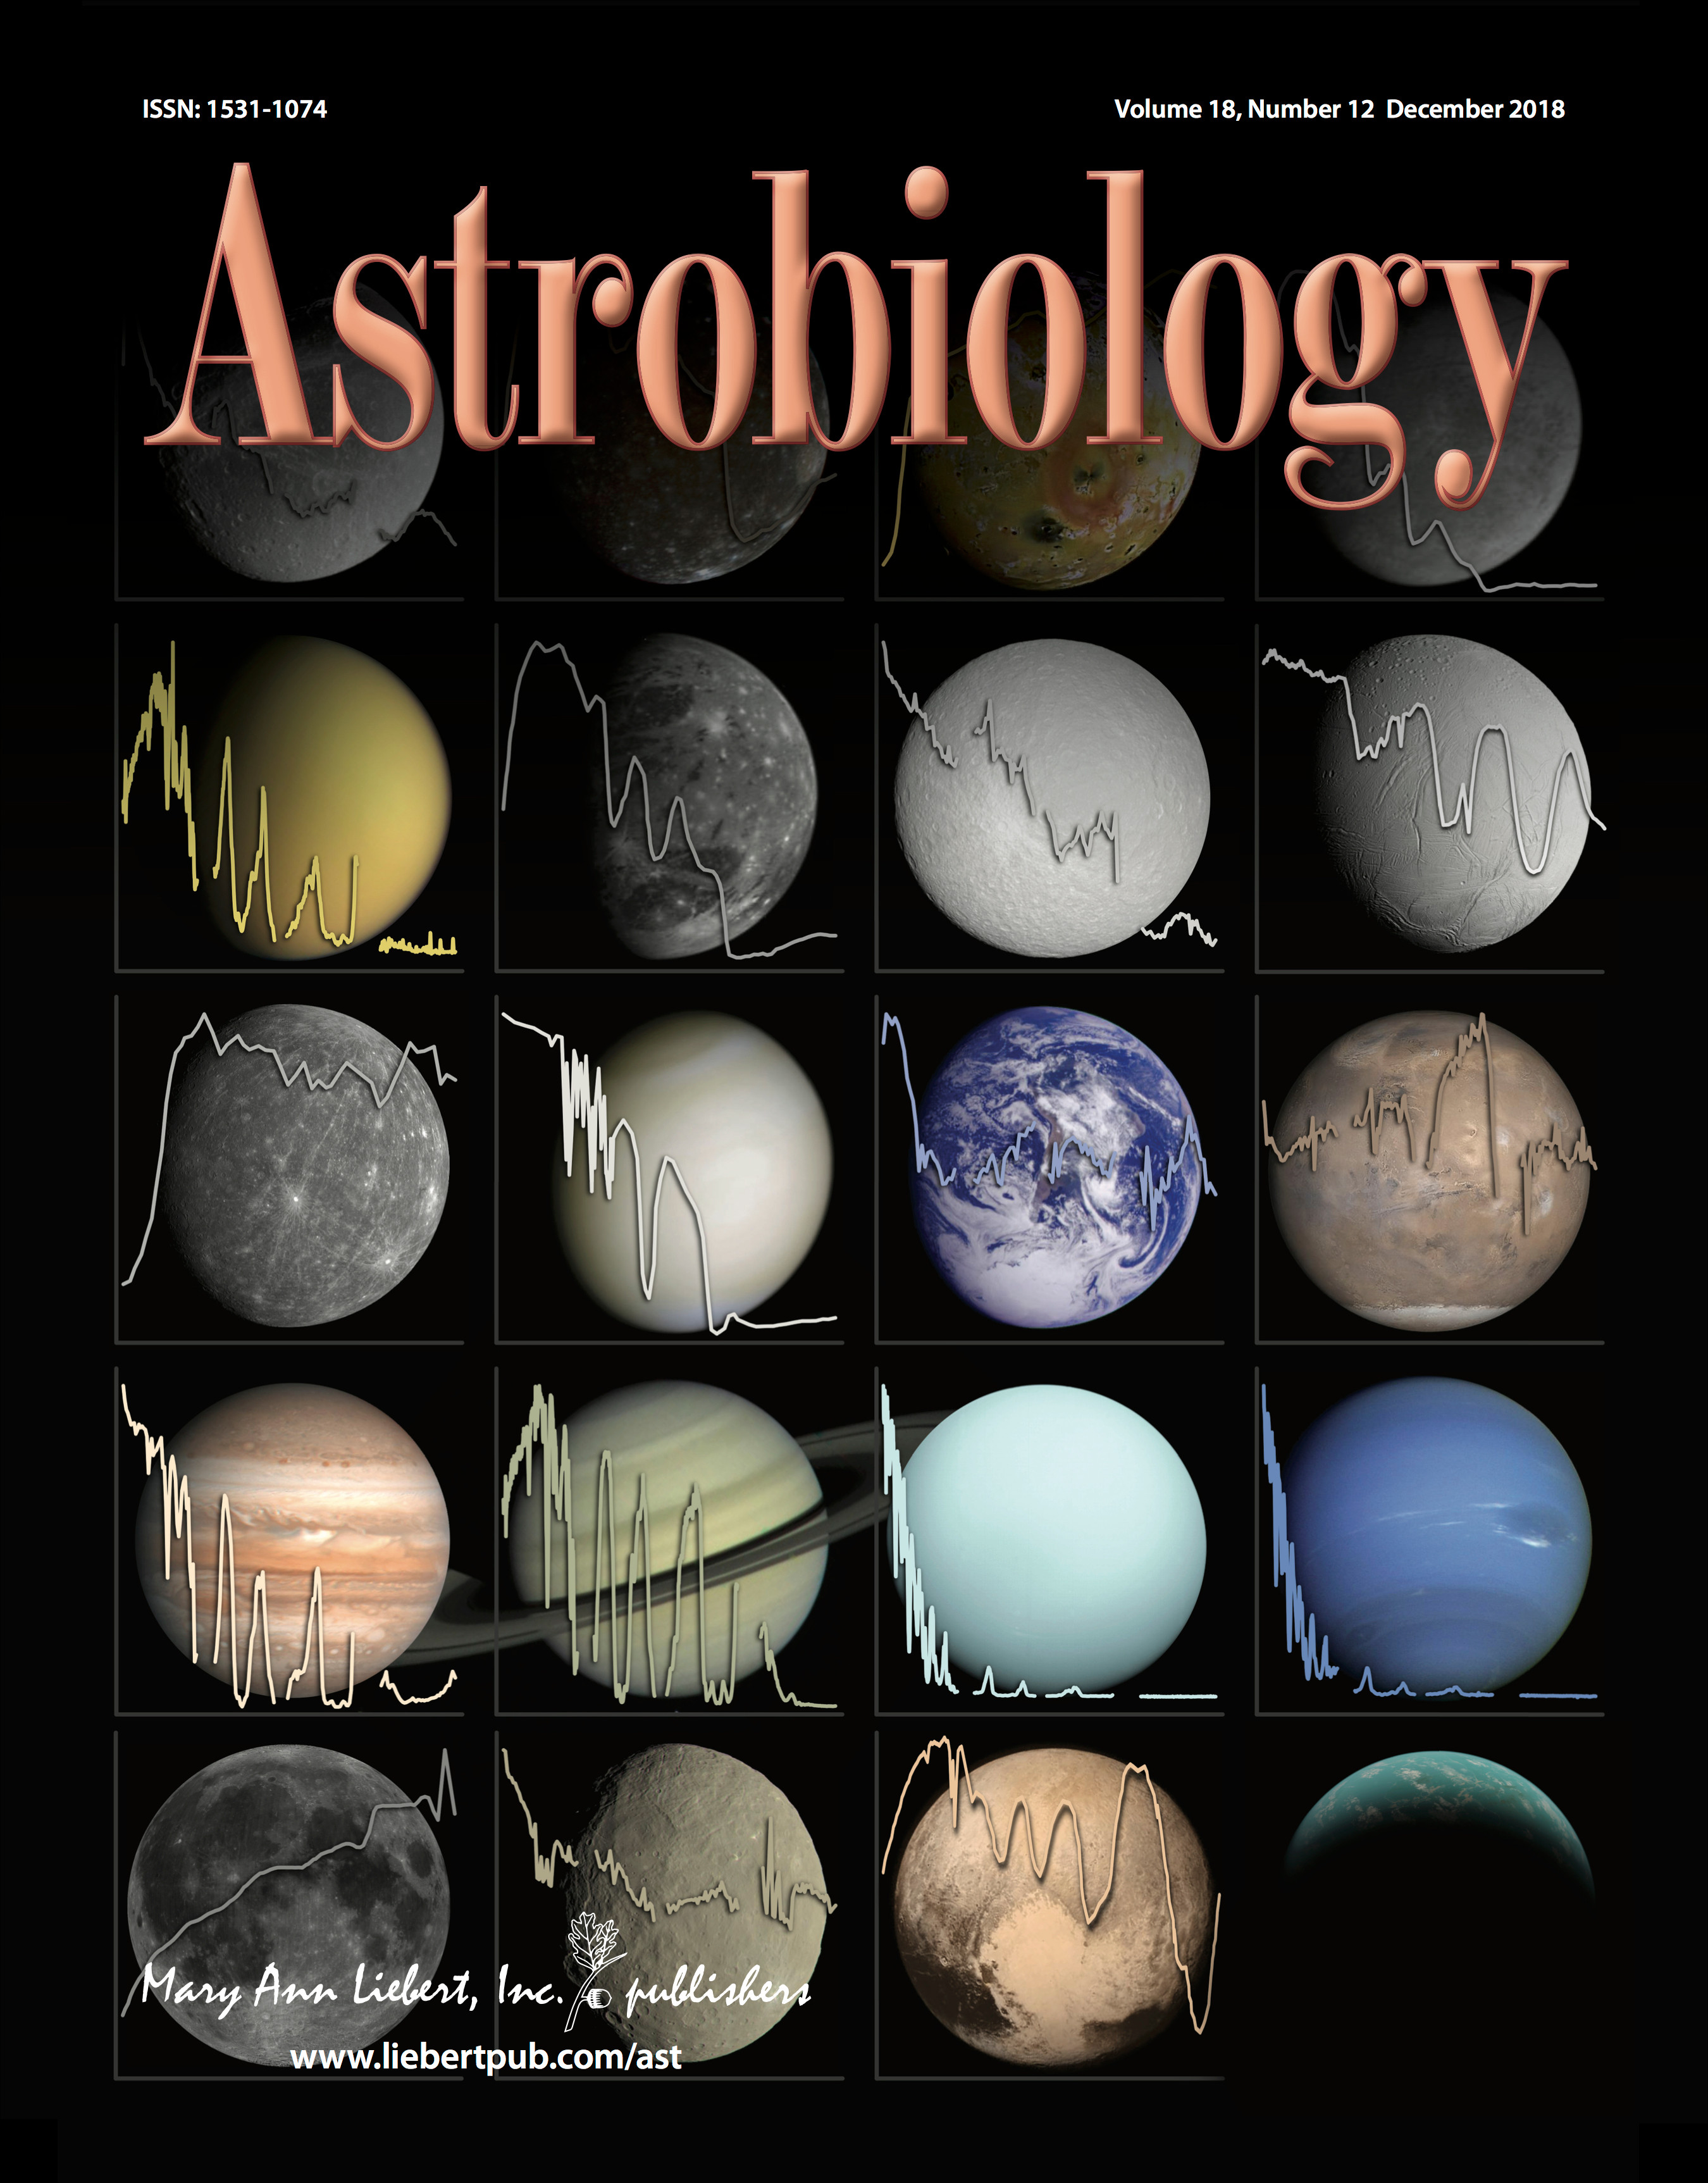 Cover of the December 2018 issue of Astrobiology